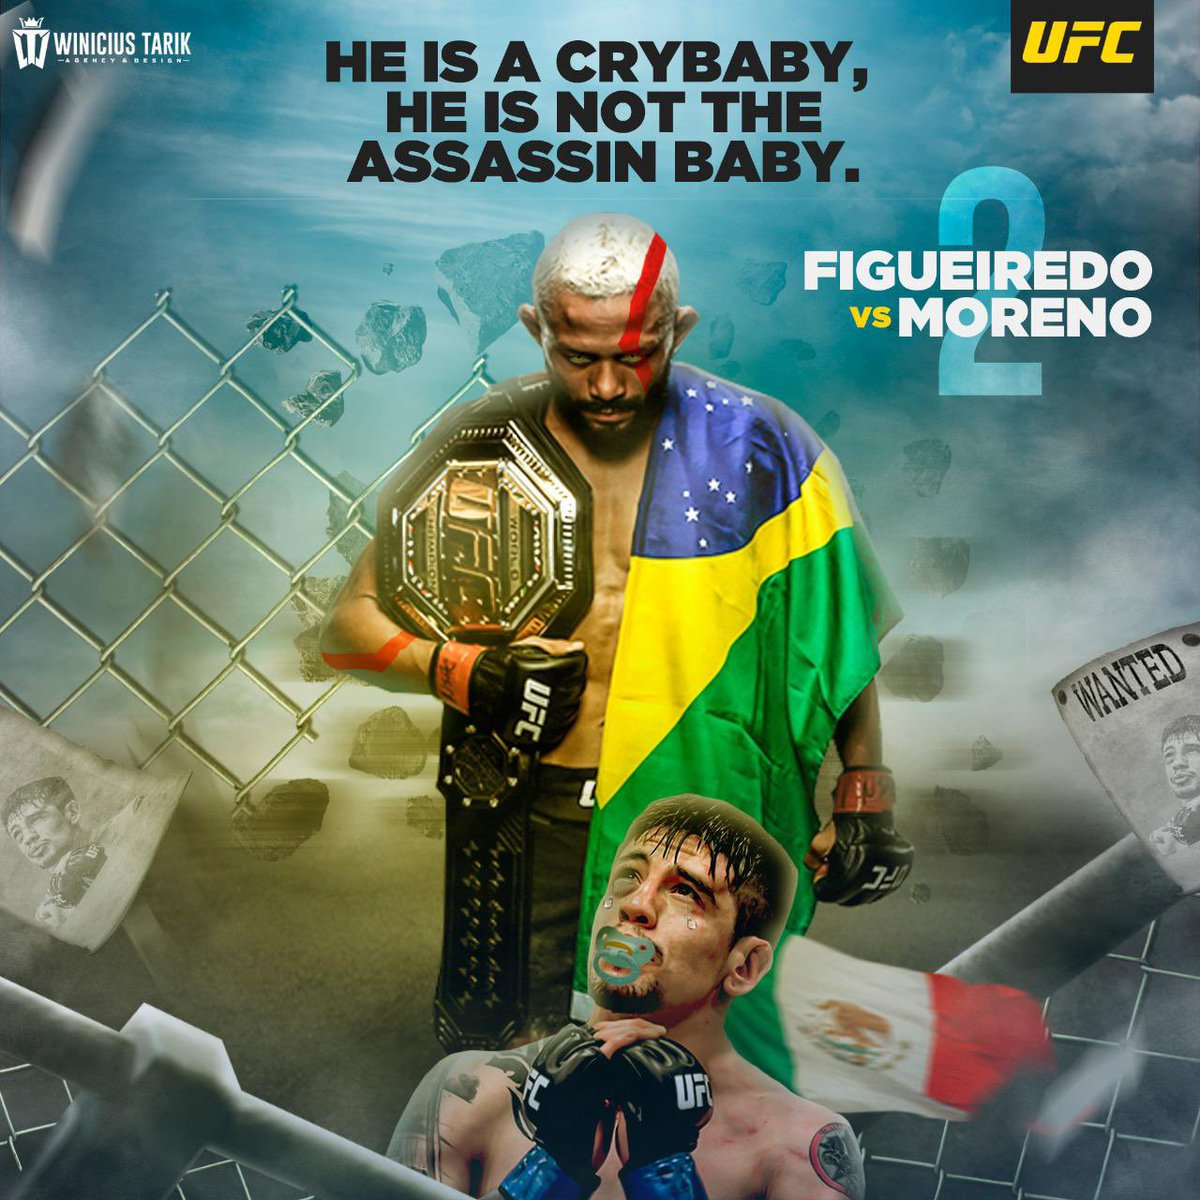 Breno Moreno  @theassassinbaby you are a cry baby, not a assain baby, I can still hear you groaning and whining every time my fists pounded your body.  I'm training to tear your head 😈 @danawhite @Mickmaynard2 @ufc https://t.co/Pew6BnyvPj